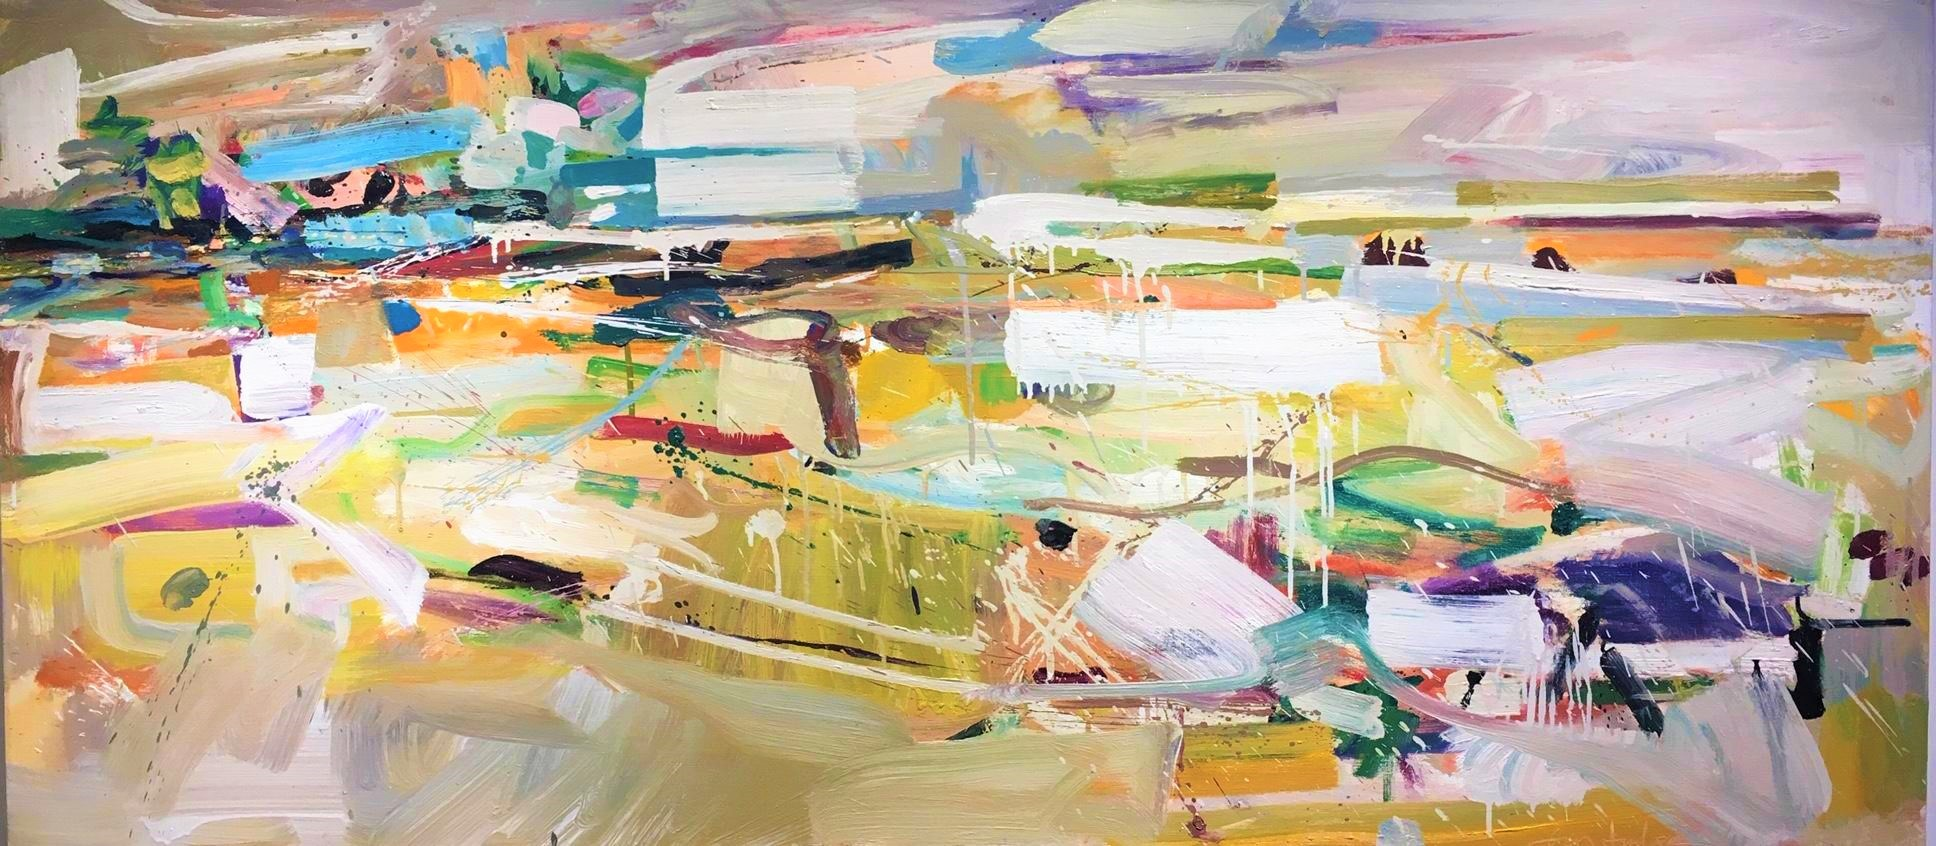 Windswept II , 2011 oil on canvas, 30 x 66 inches